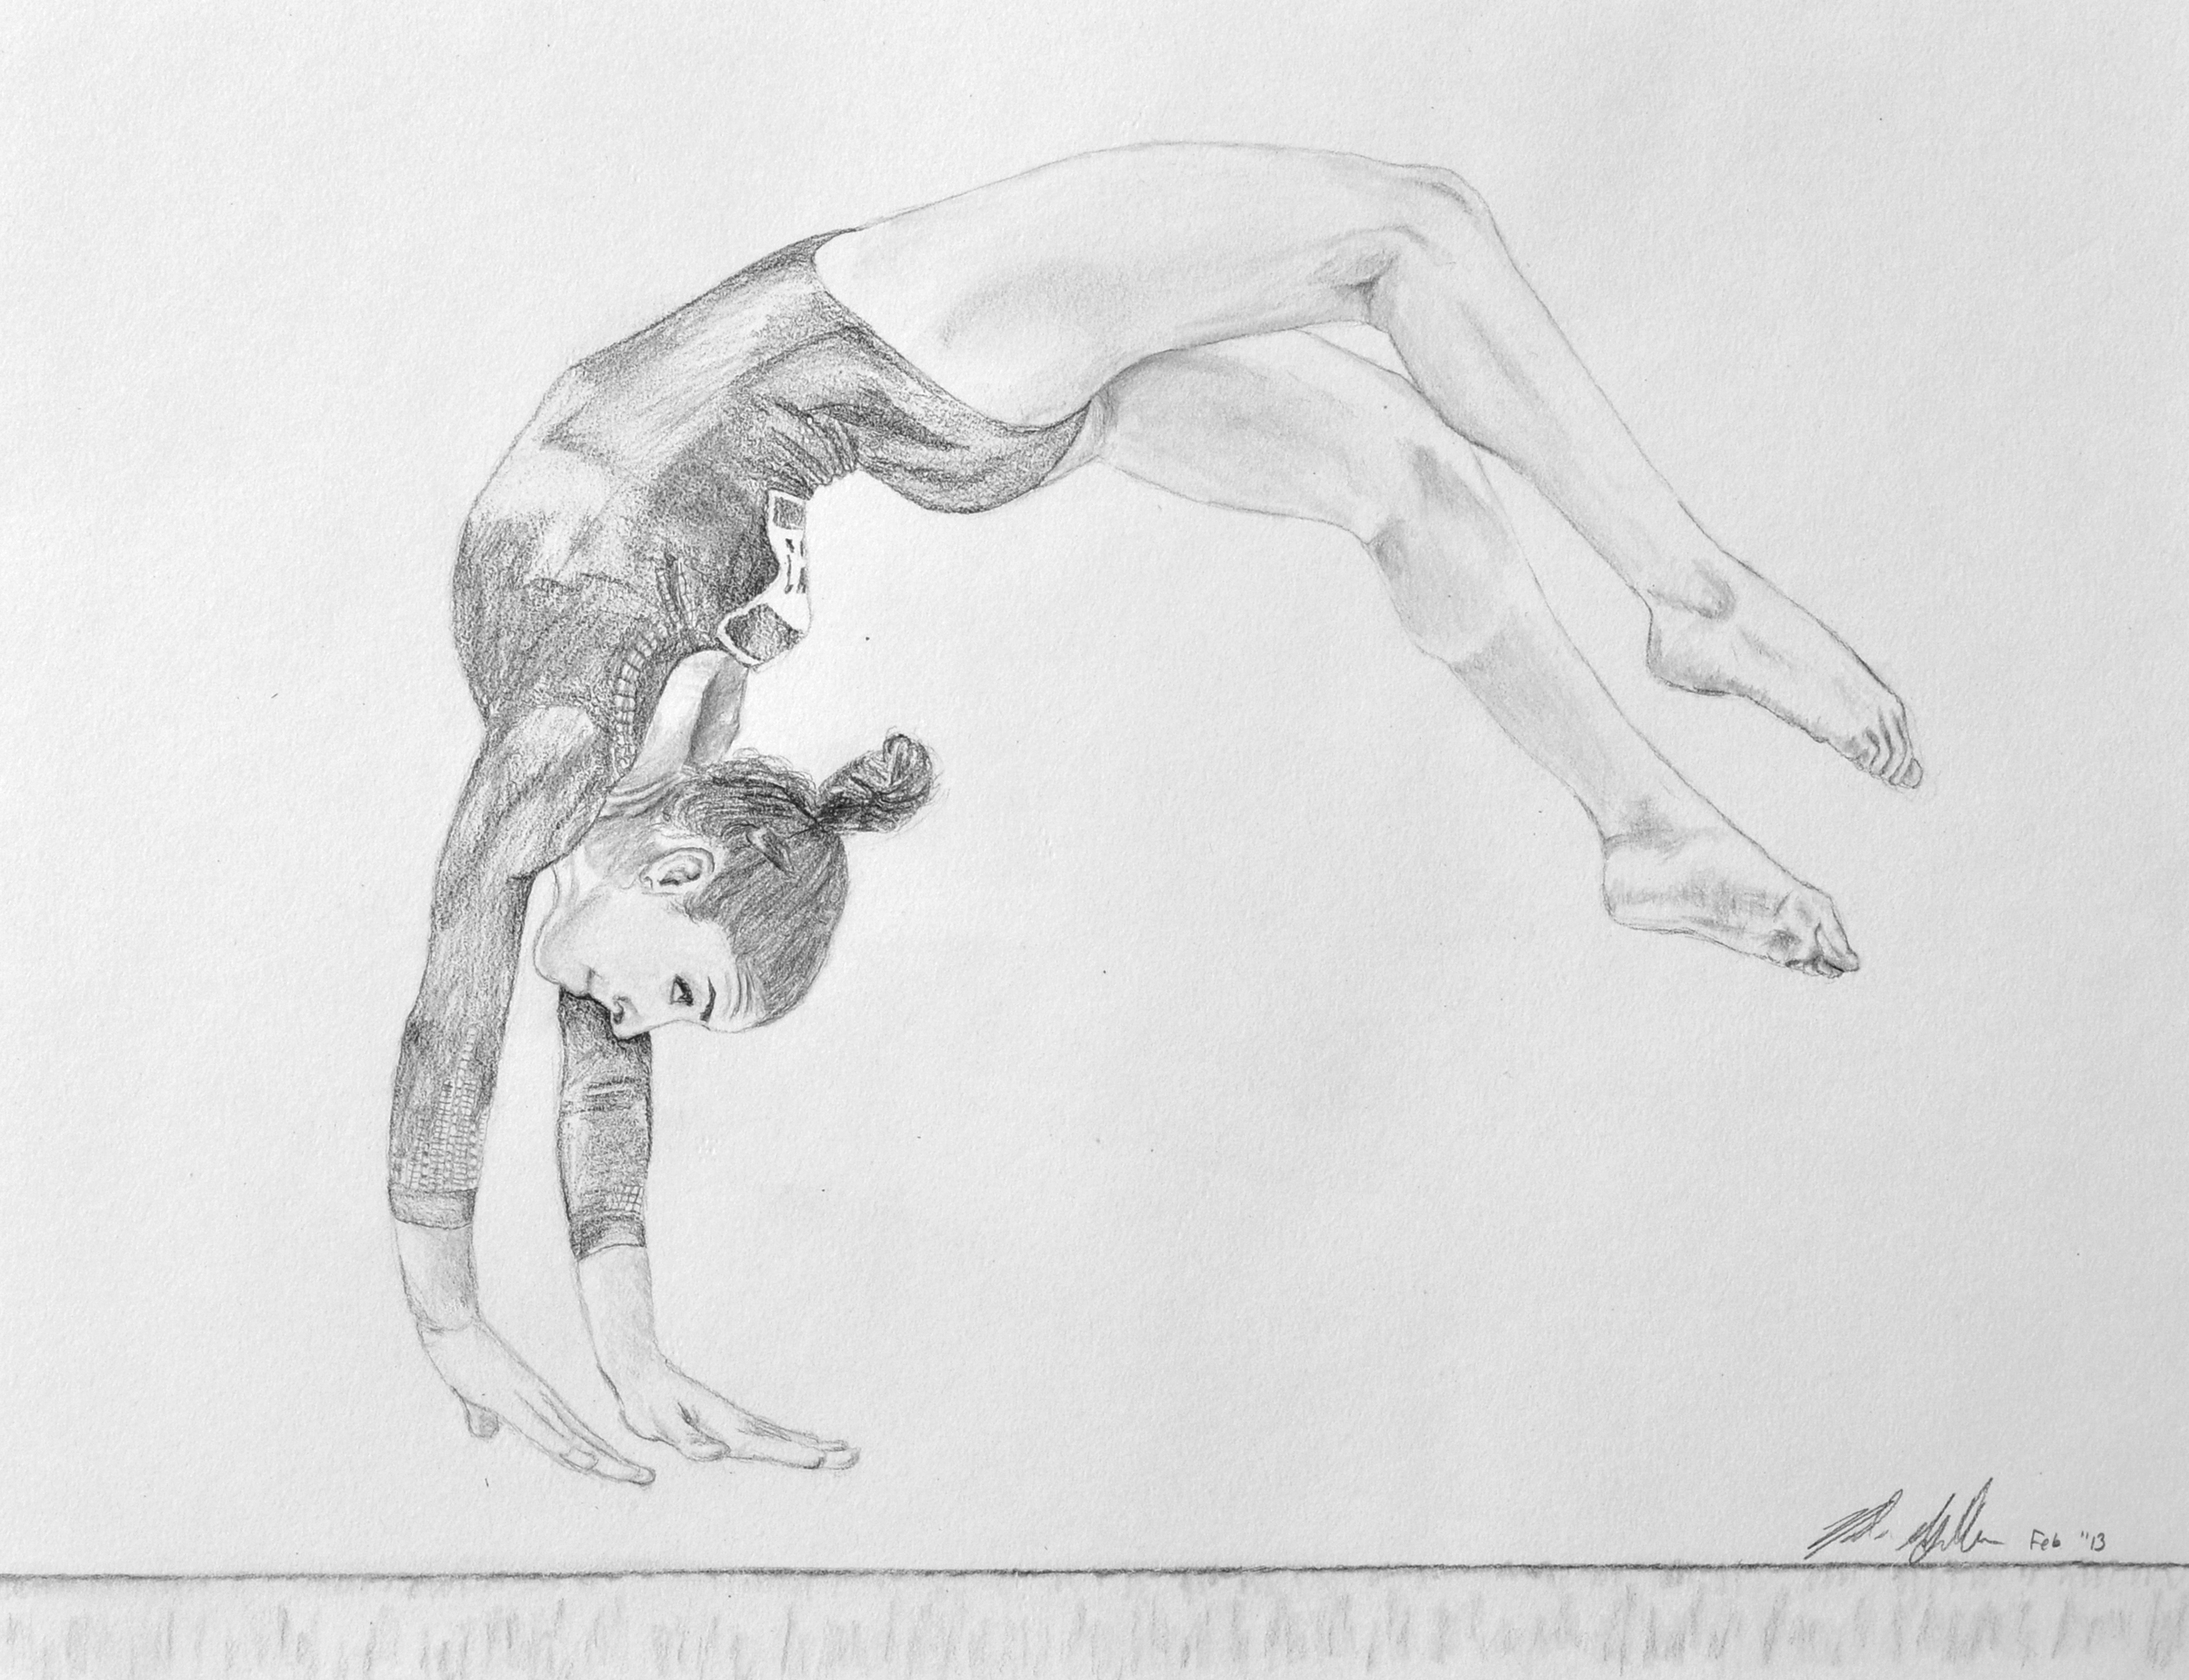 how to draw gymnastics gymnastics drawings easy free download on clipartmag how to gymnastics draw